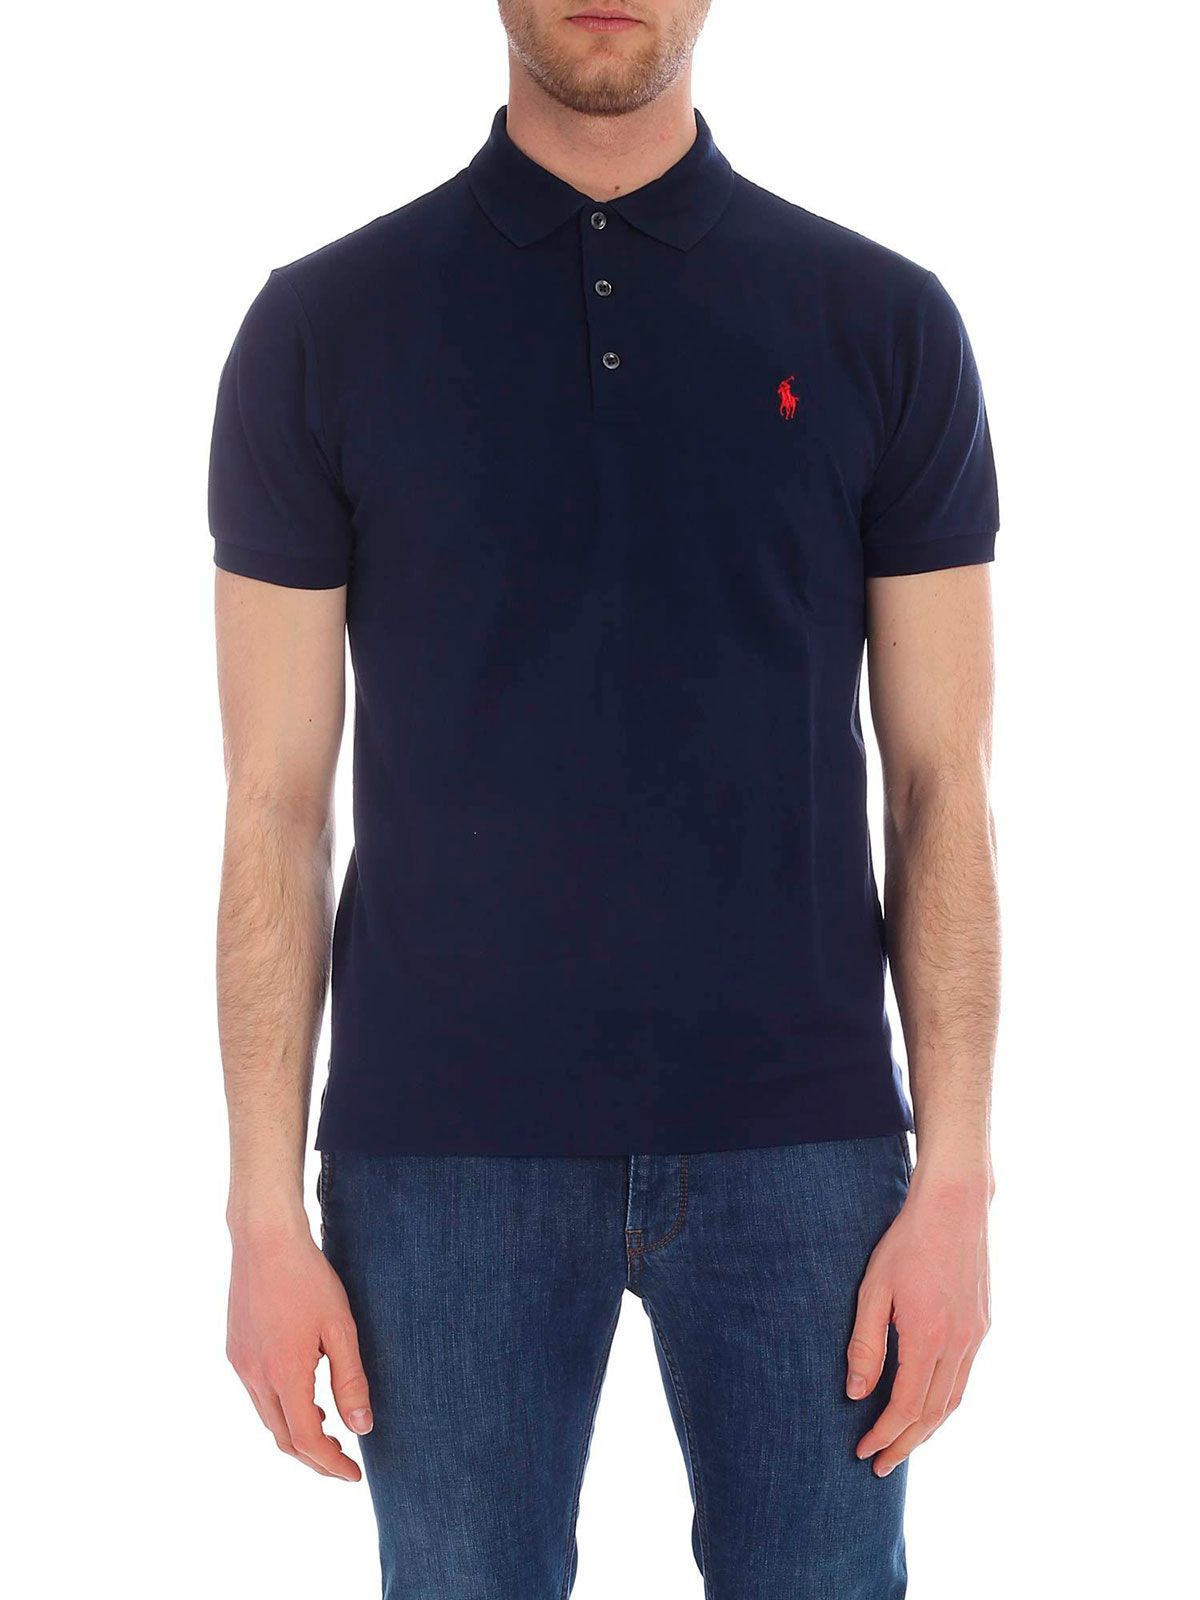 RALPH LAUREN MEN'S 710541705009 BLUE COTTON POLO SHIRT